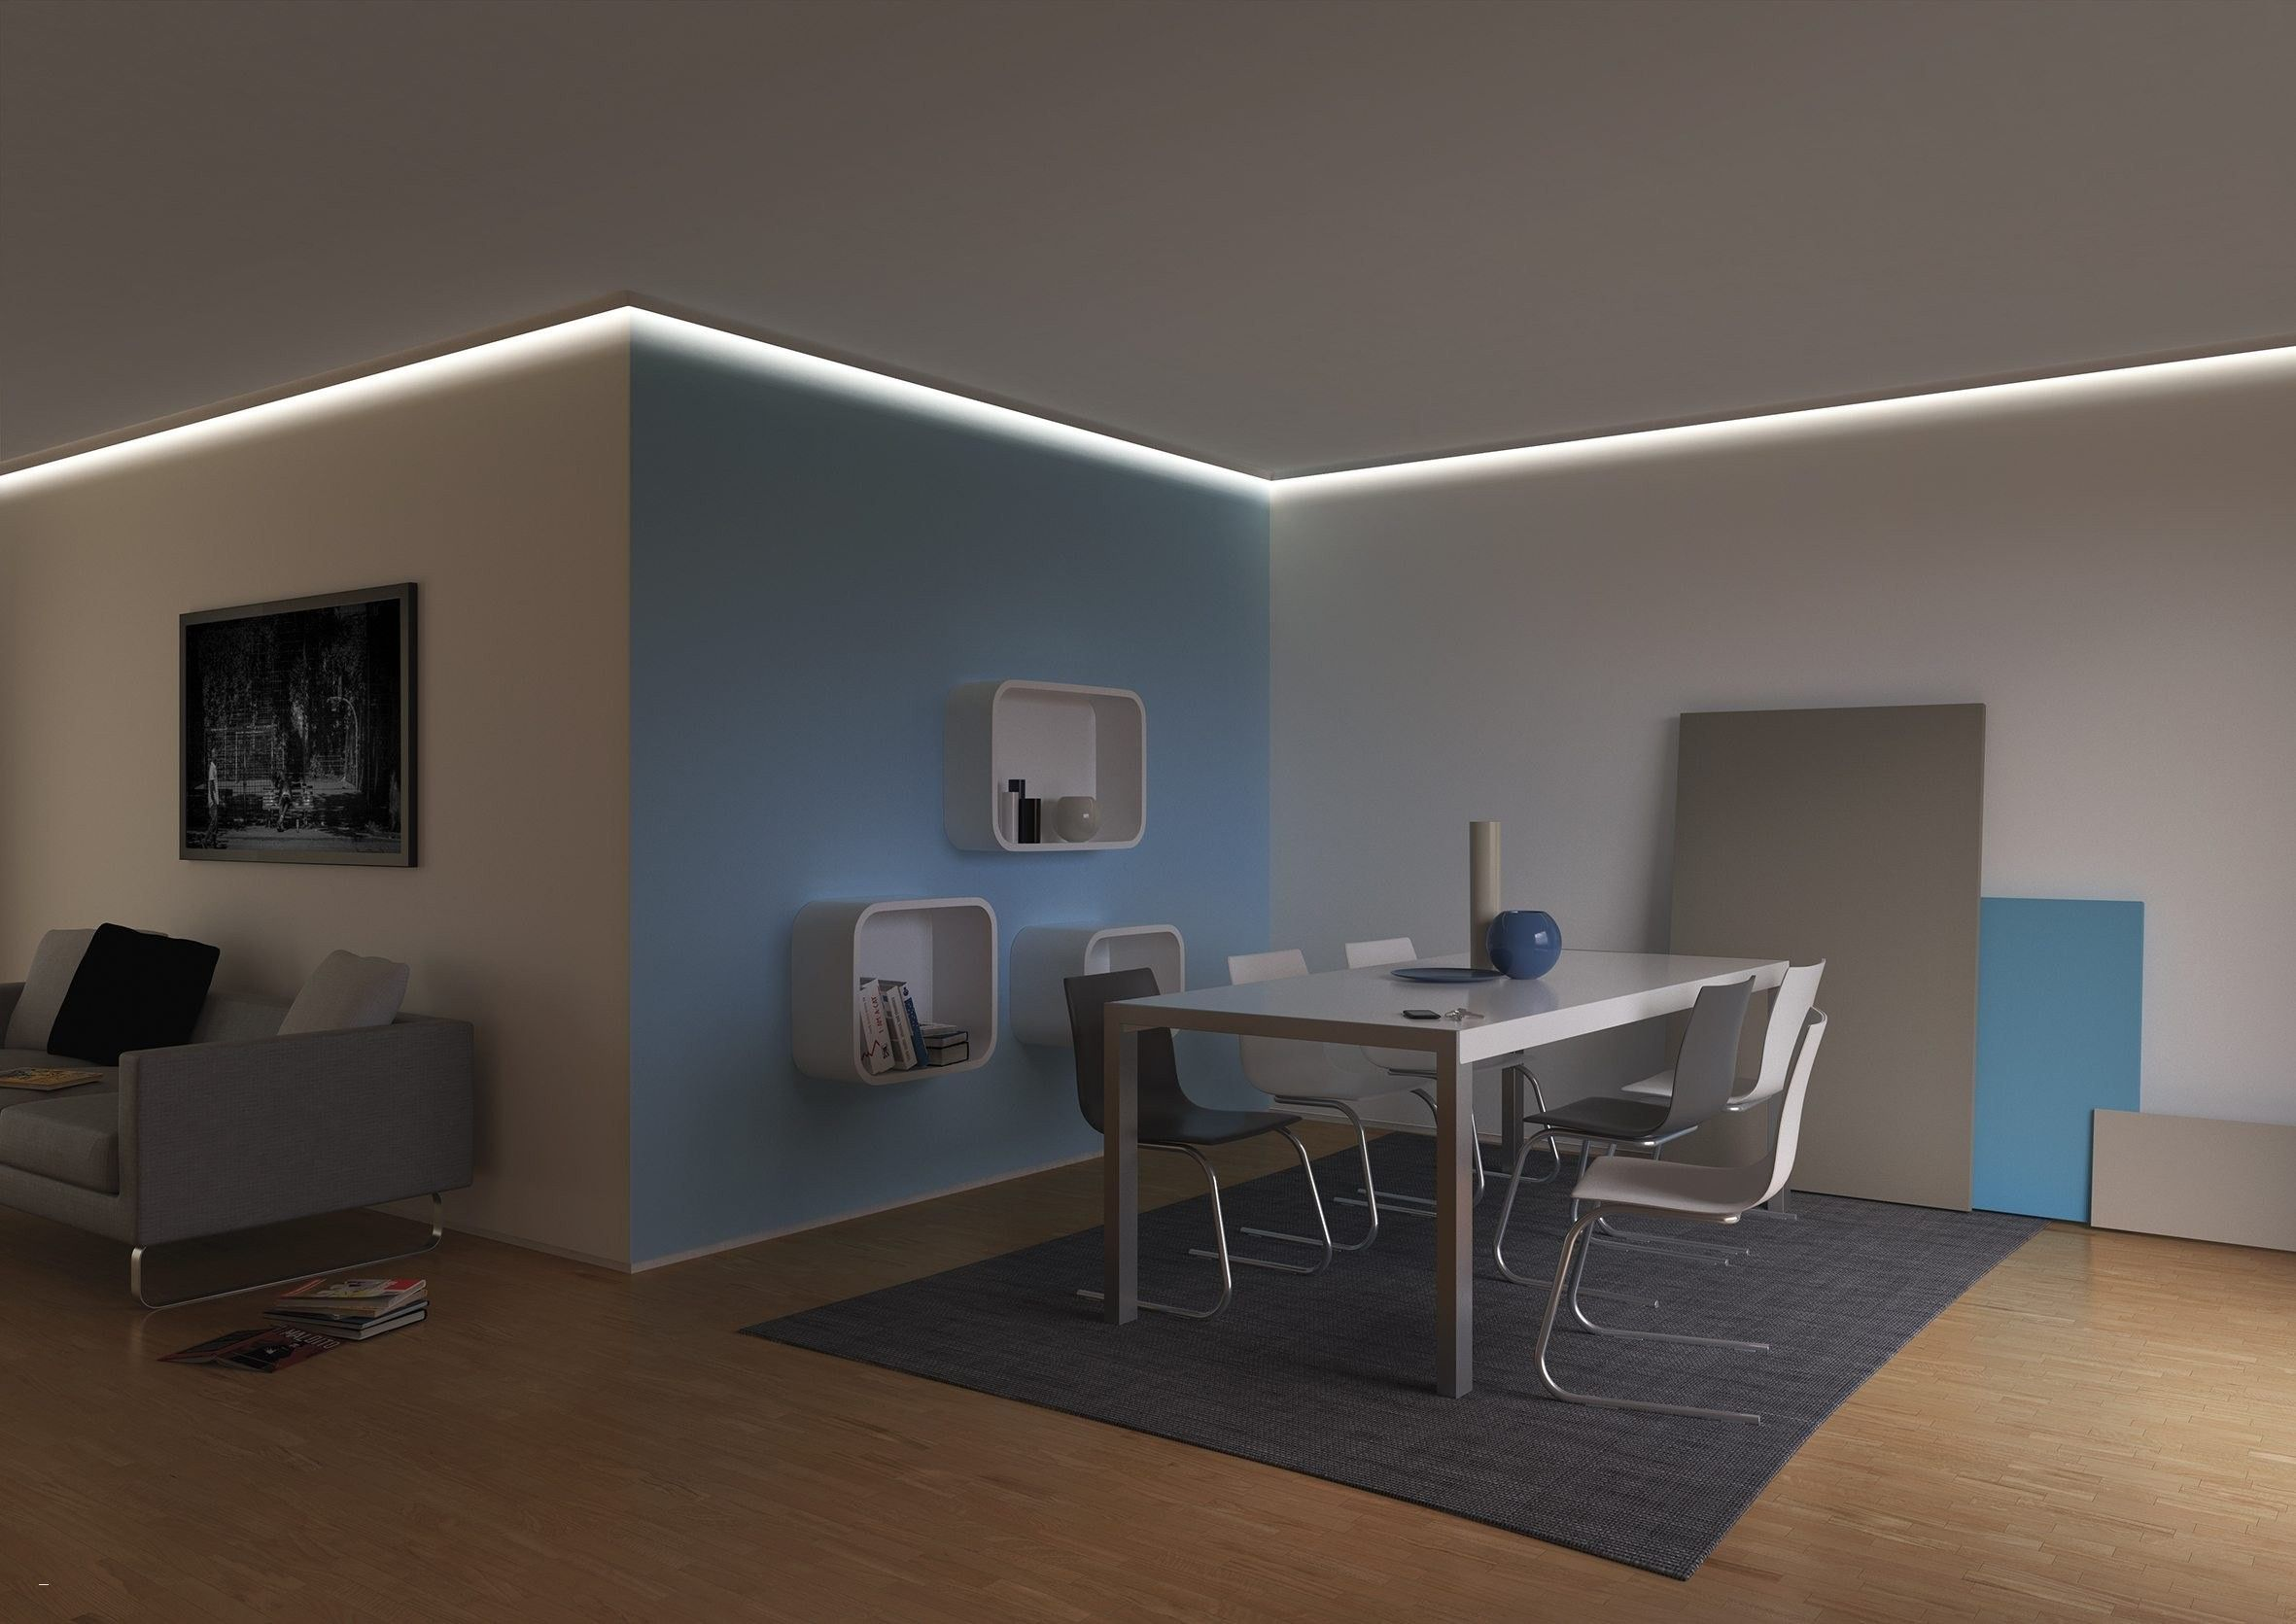 led beleuchtung wohnzimmer decke  Living room lighting, Ceiling